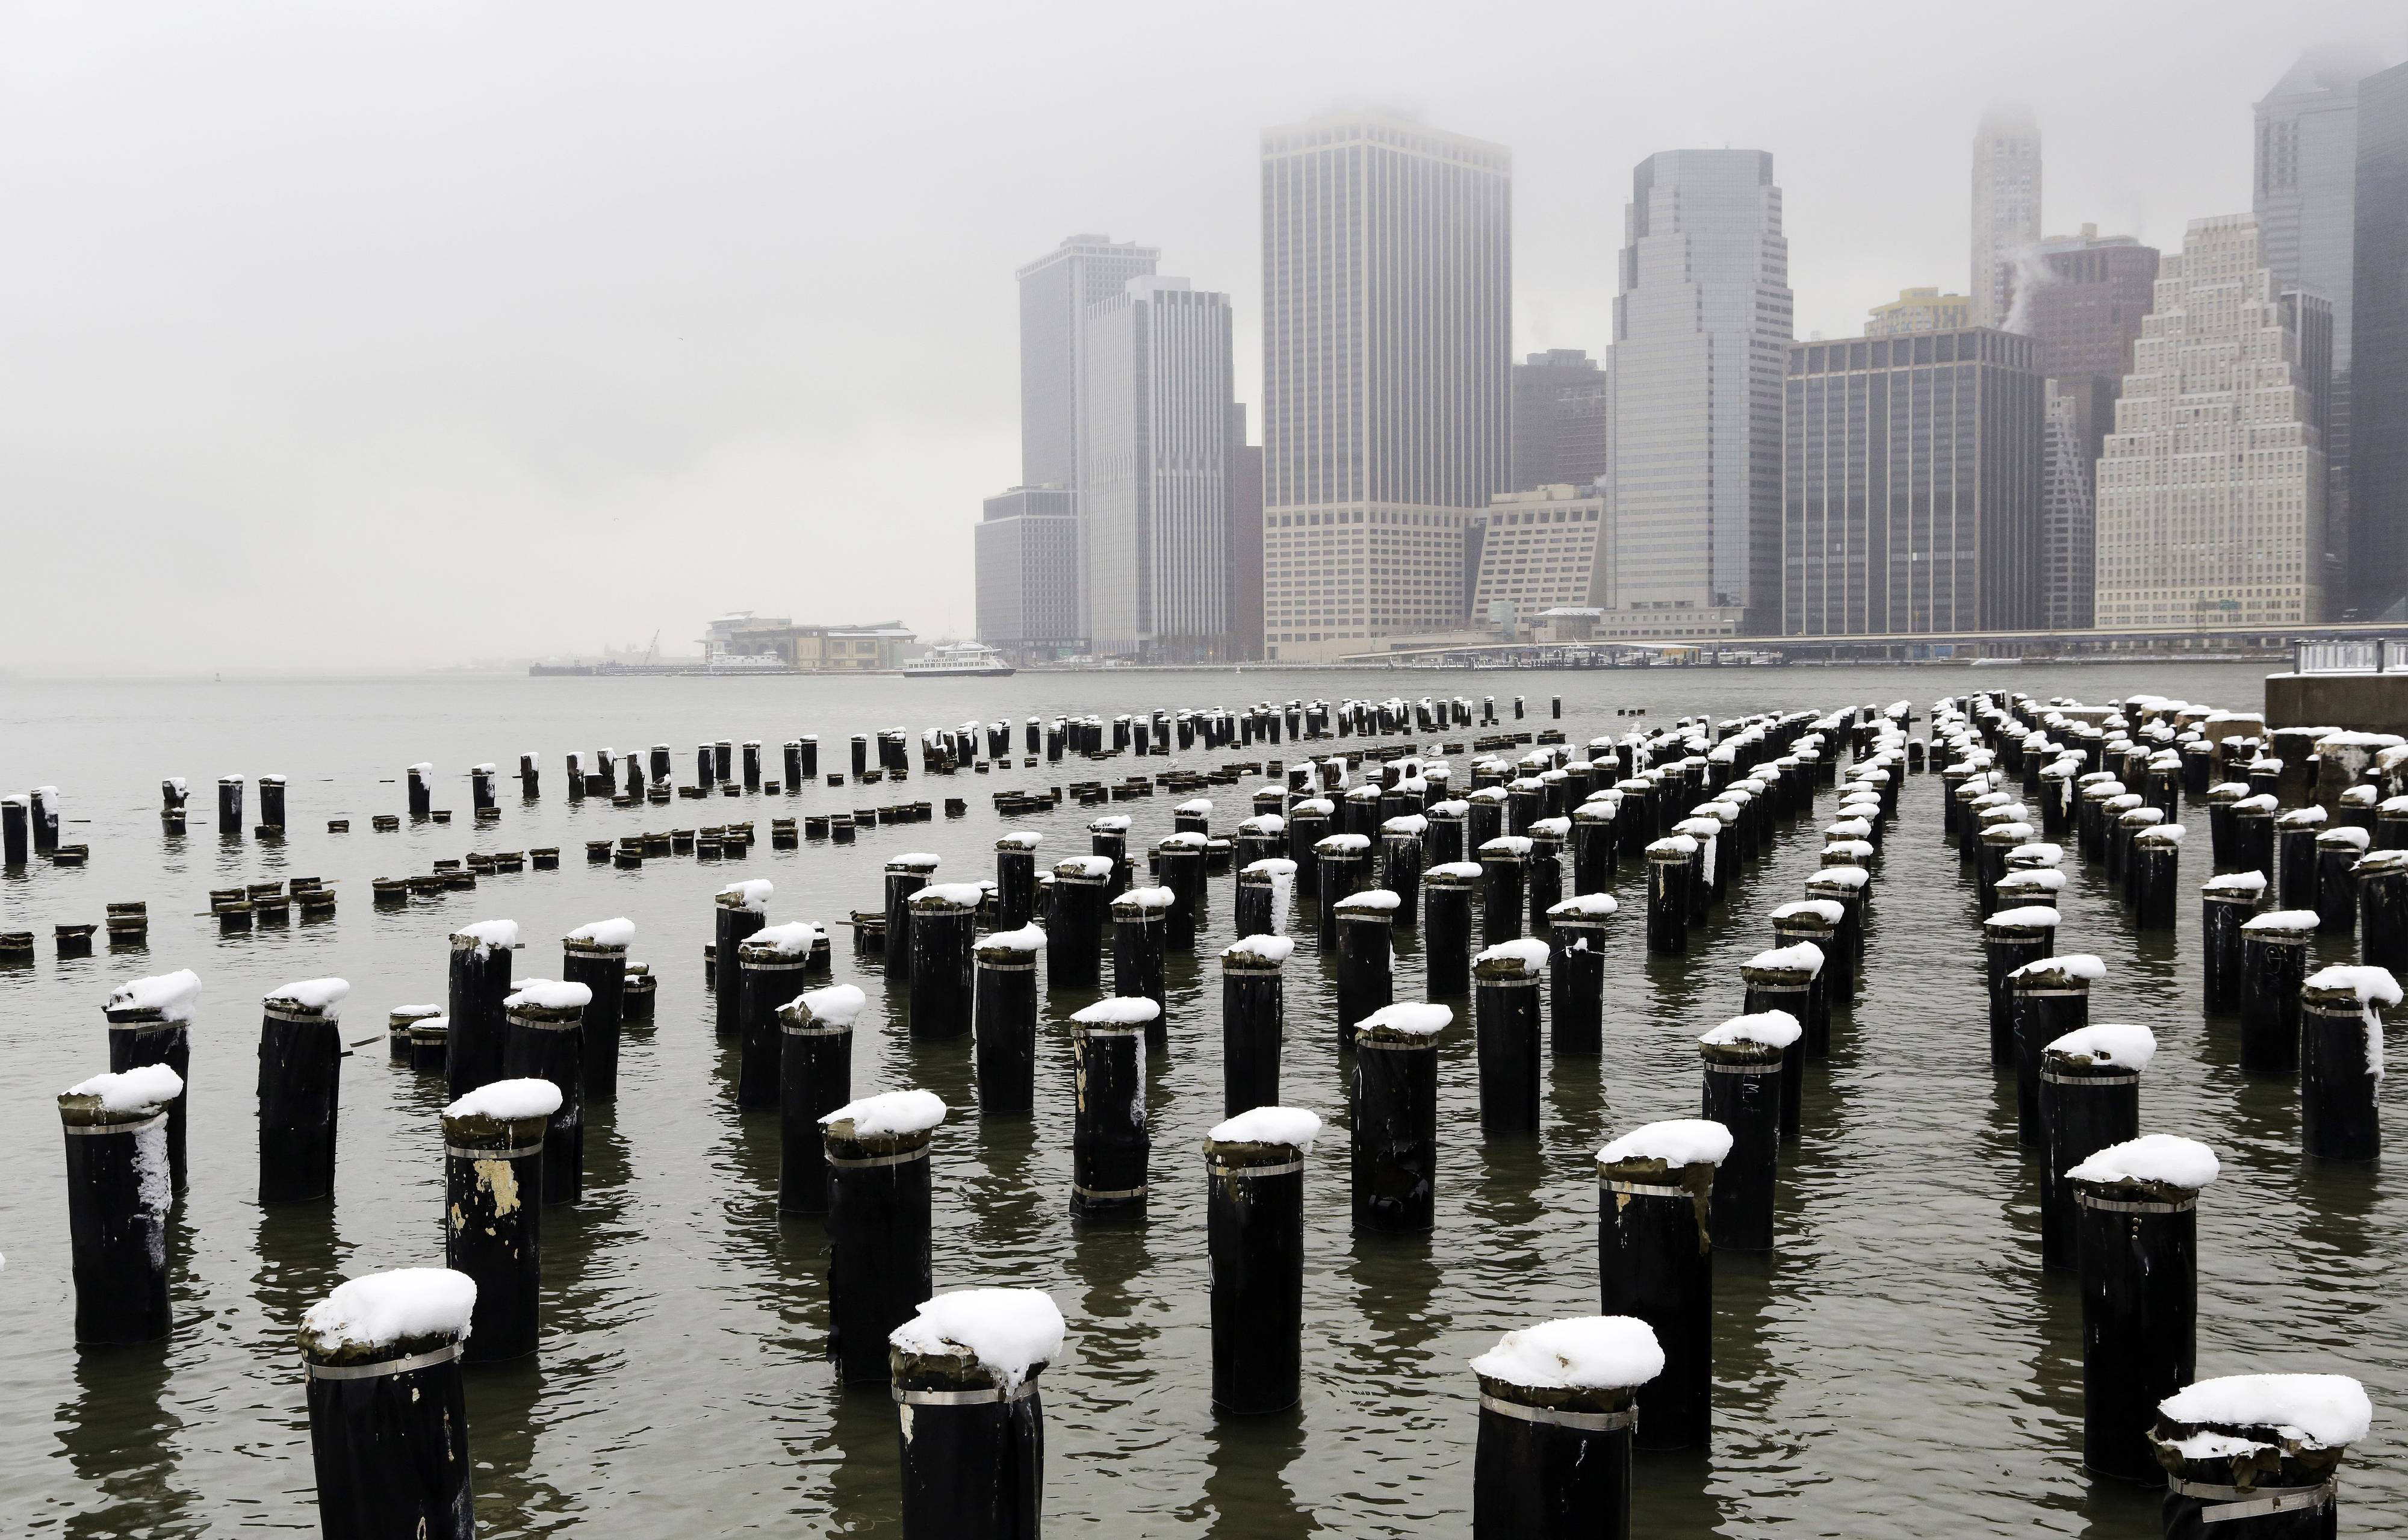 Snow-capped pilings dot the Brooklyn waterfront with the Manhattan skyline in the background Wednesday, Feb. 5, 2014, in New York. Gov. Andrew Cuomo declared a statewide state of emergency, closing Interstate 84 between the Connecticut and Pennsylvania borders until midafternoon.